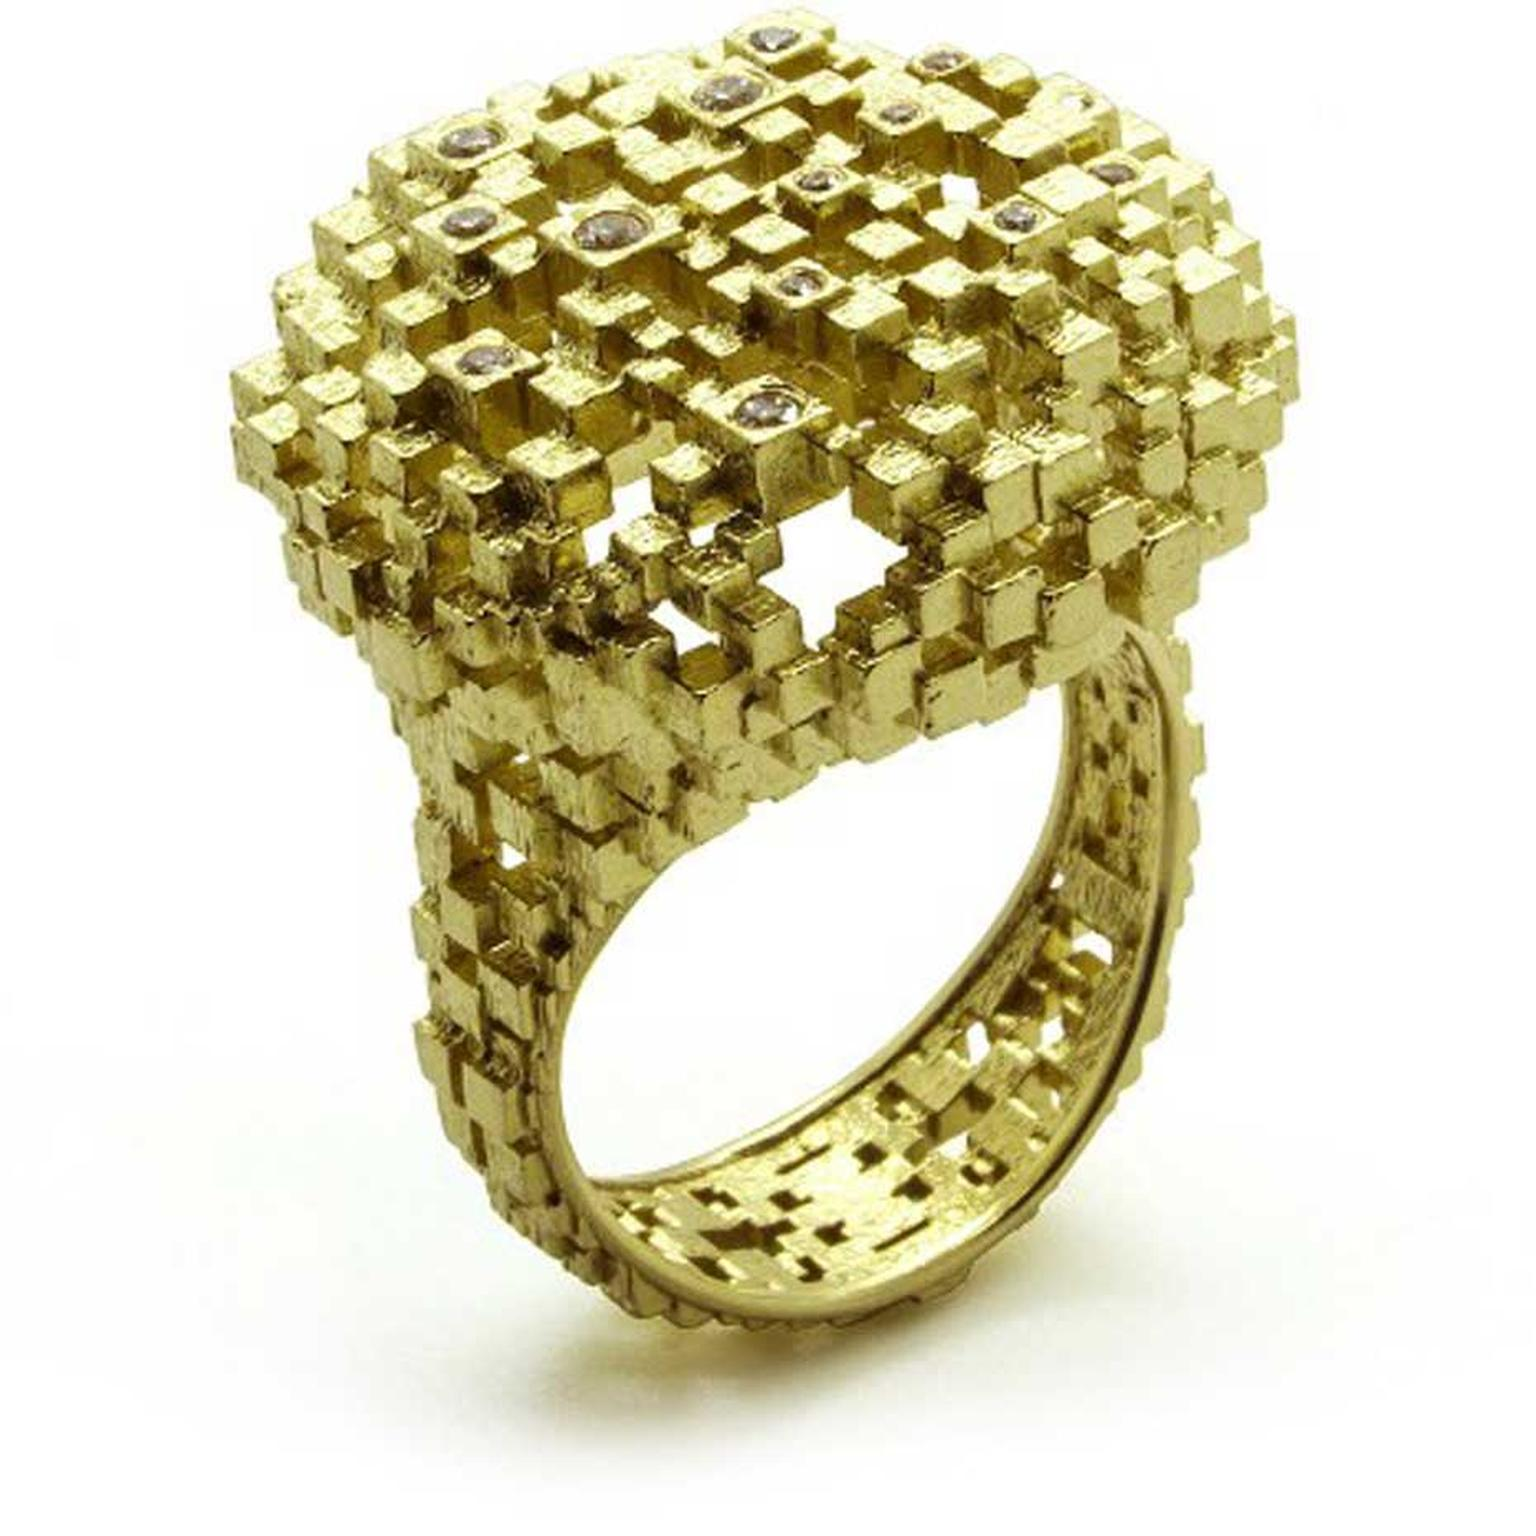 Jo Hayes Ward Diamond Cushion ring in yellow gold with 15 brilliant-cut diamonds.